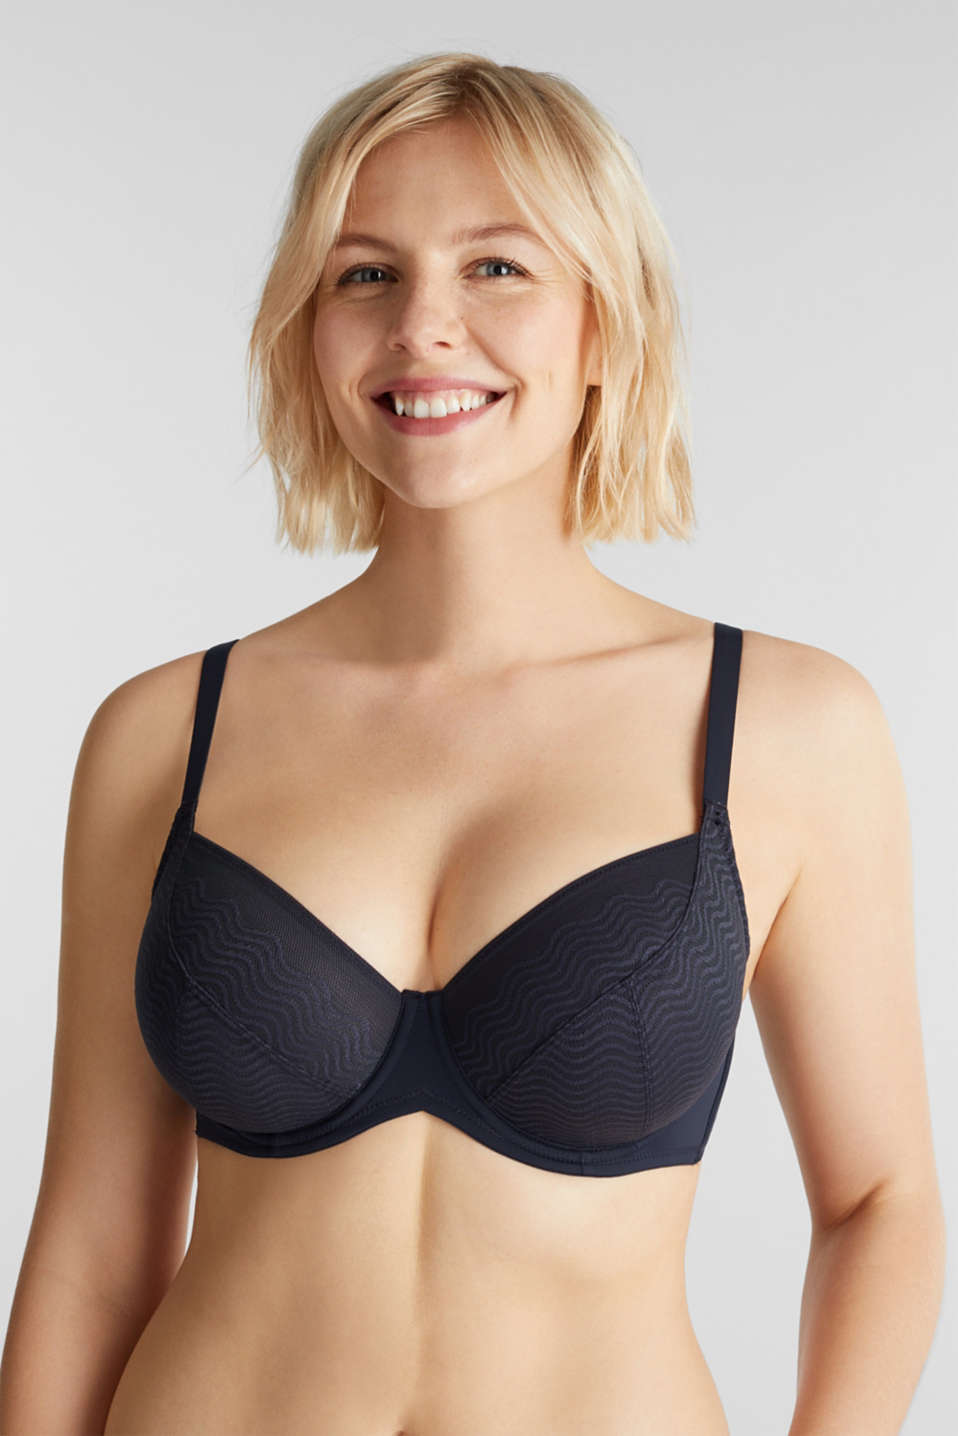 Esprit - Unpadded underwire top made of wavy lace